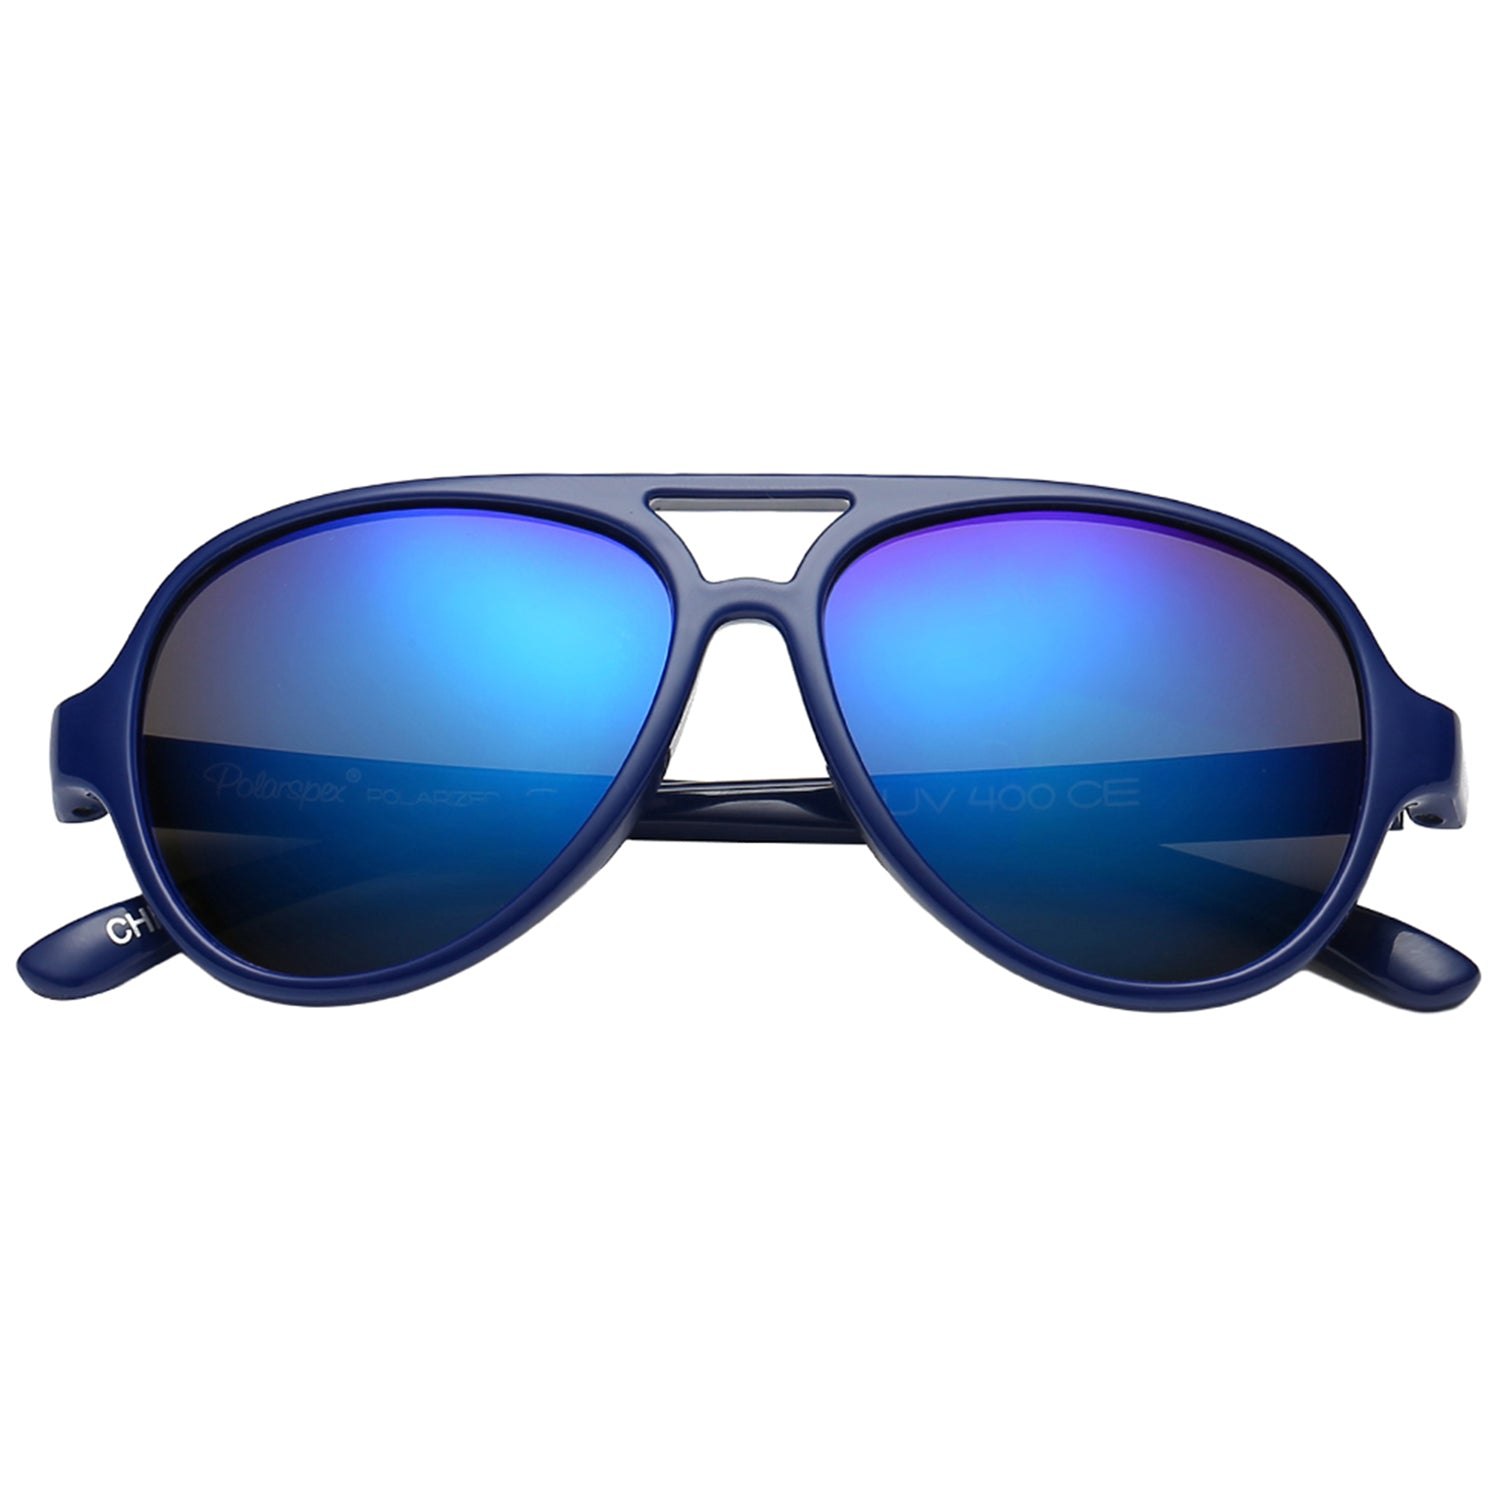 Polarspex Polarized Bendable Aviator Pilot Sunglasses with Royal Blue Frames and Polarized Ice Blue Lenses for Boys and Girls (Ages 2 - 8)